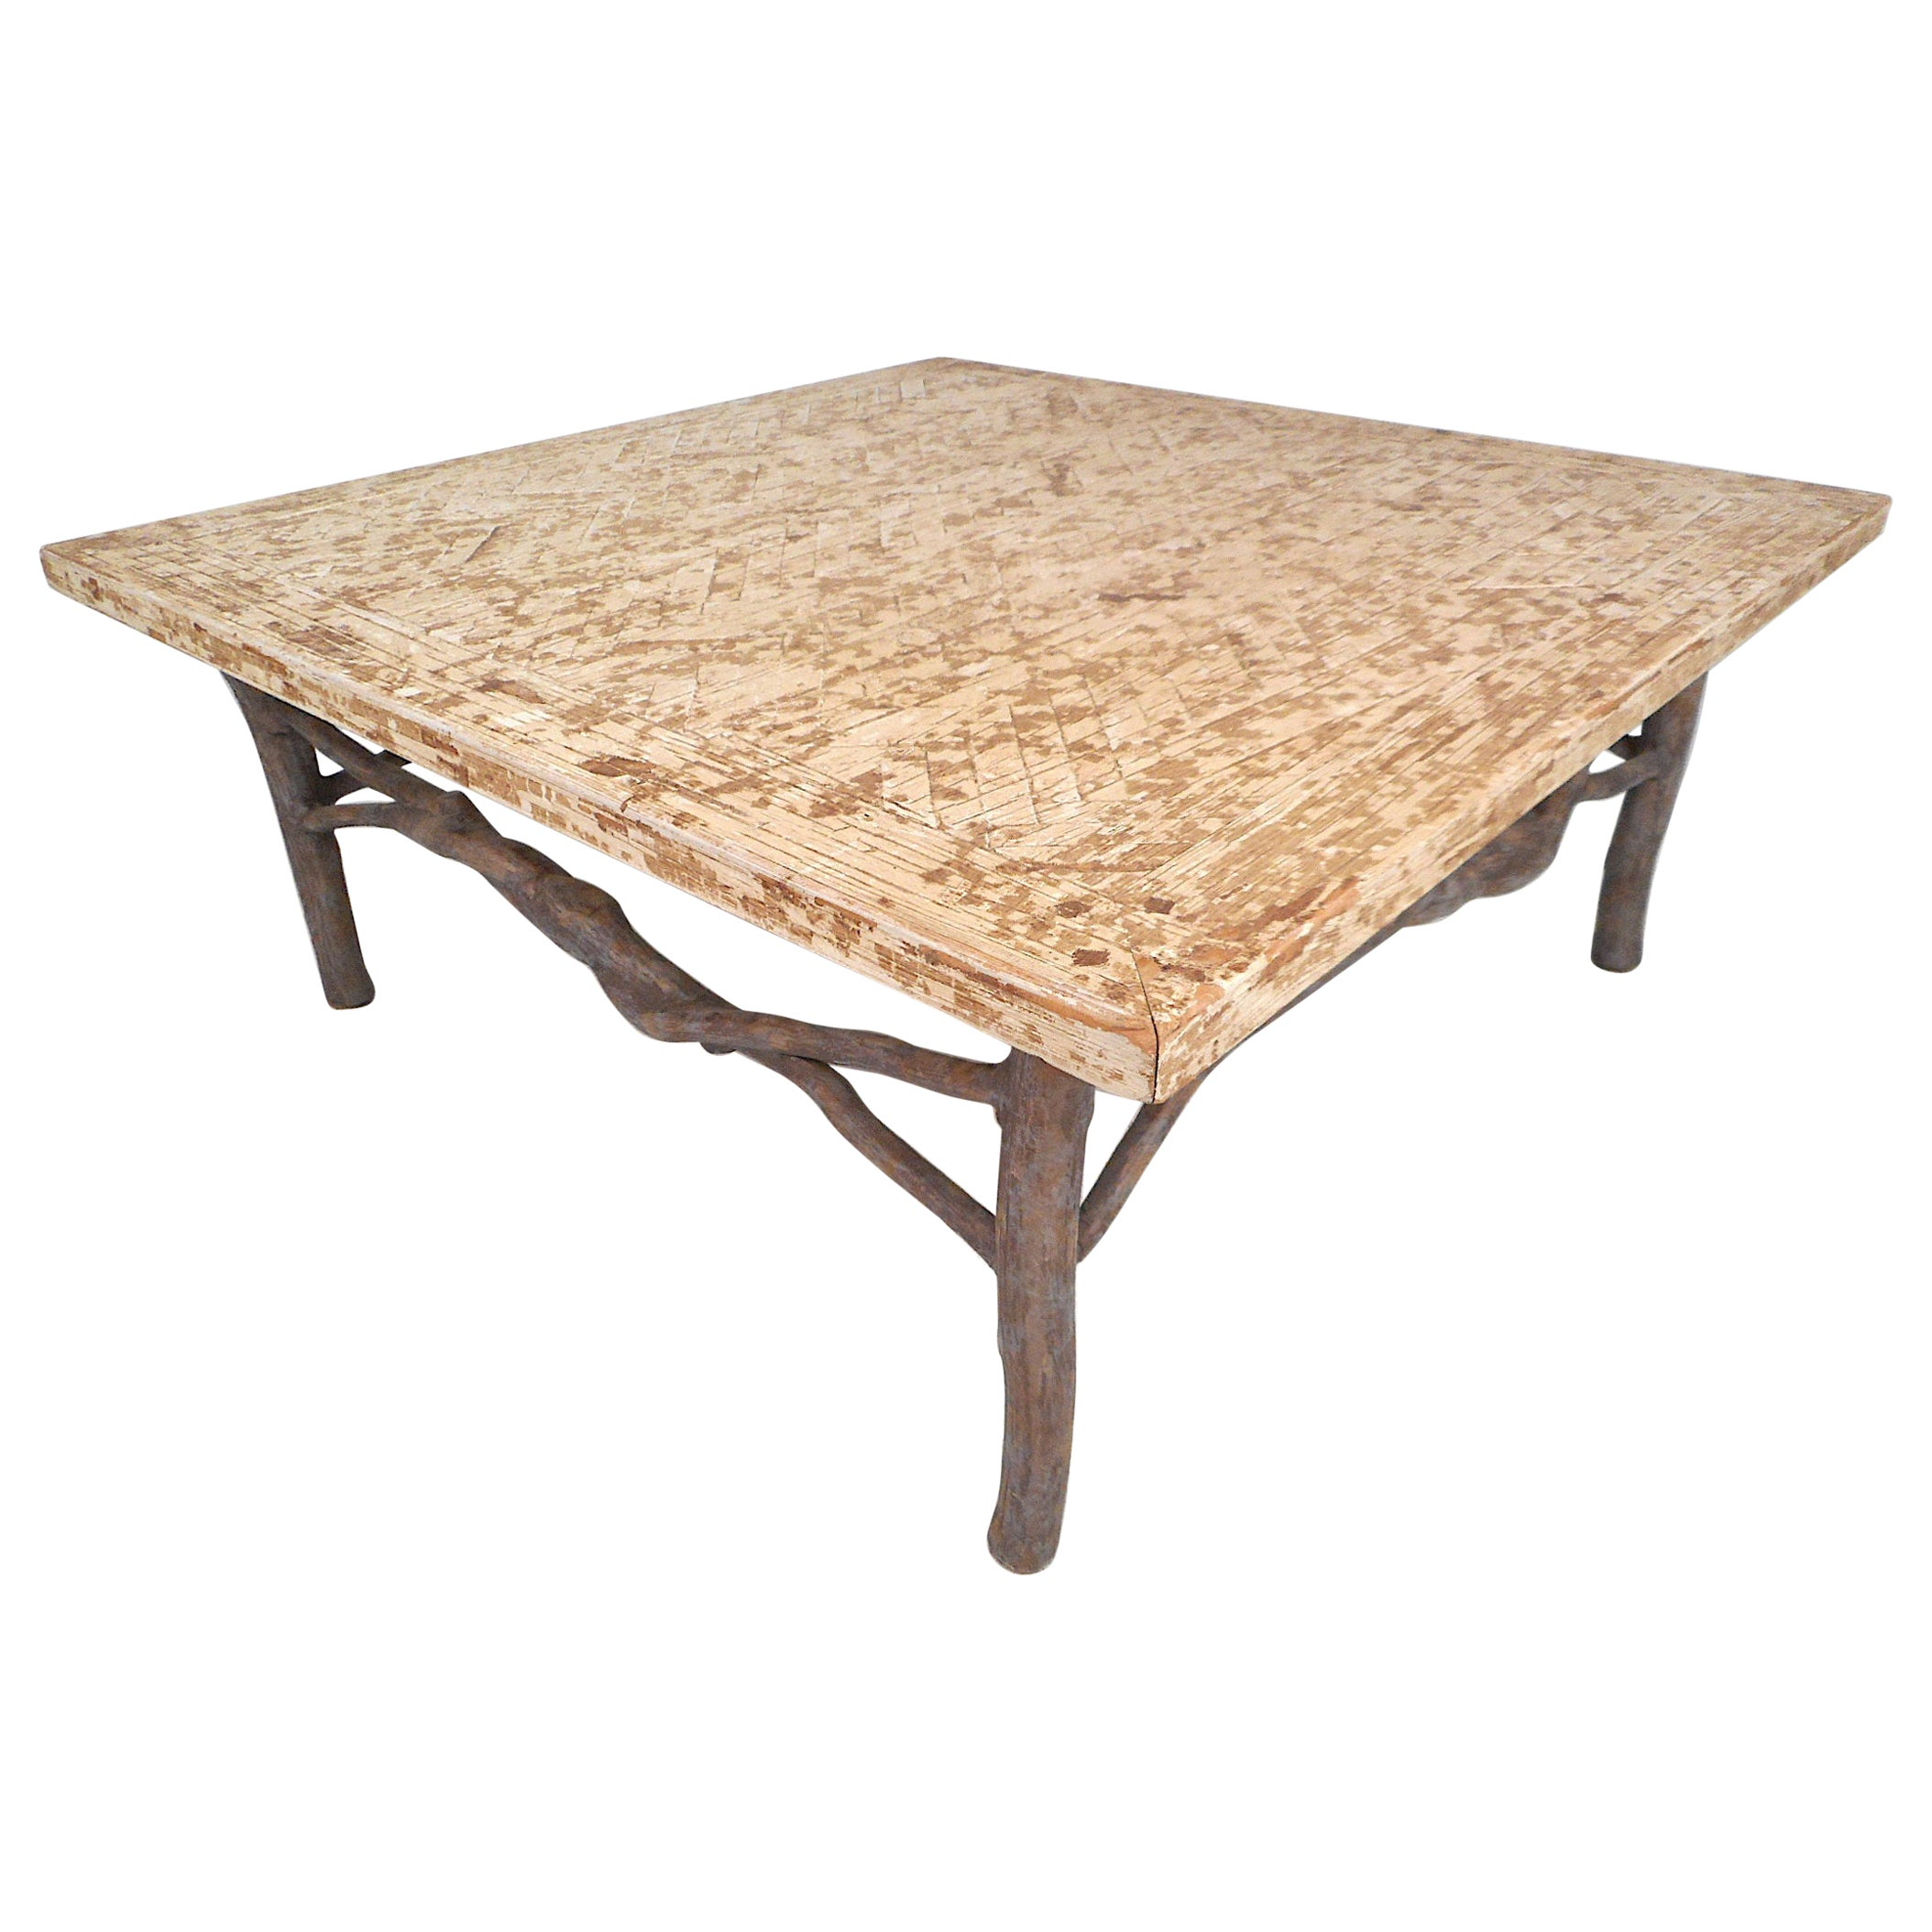 Vintage Coffee or Cocktail Table